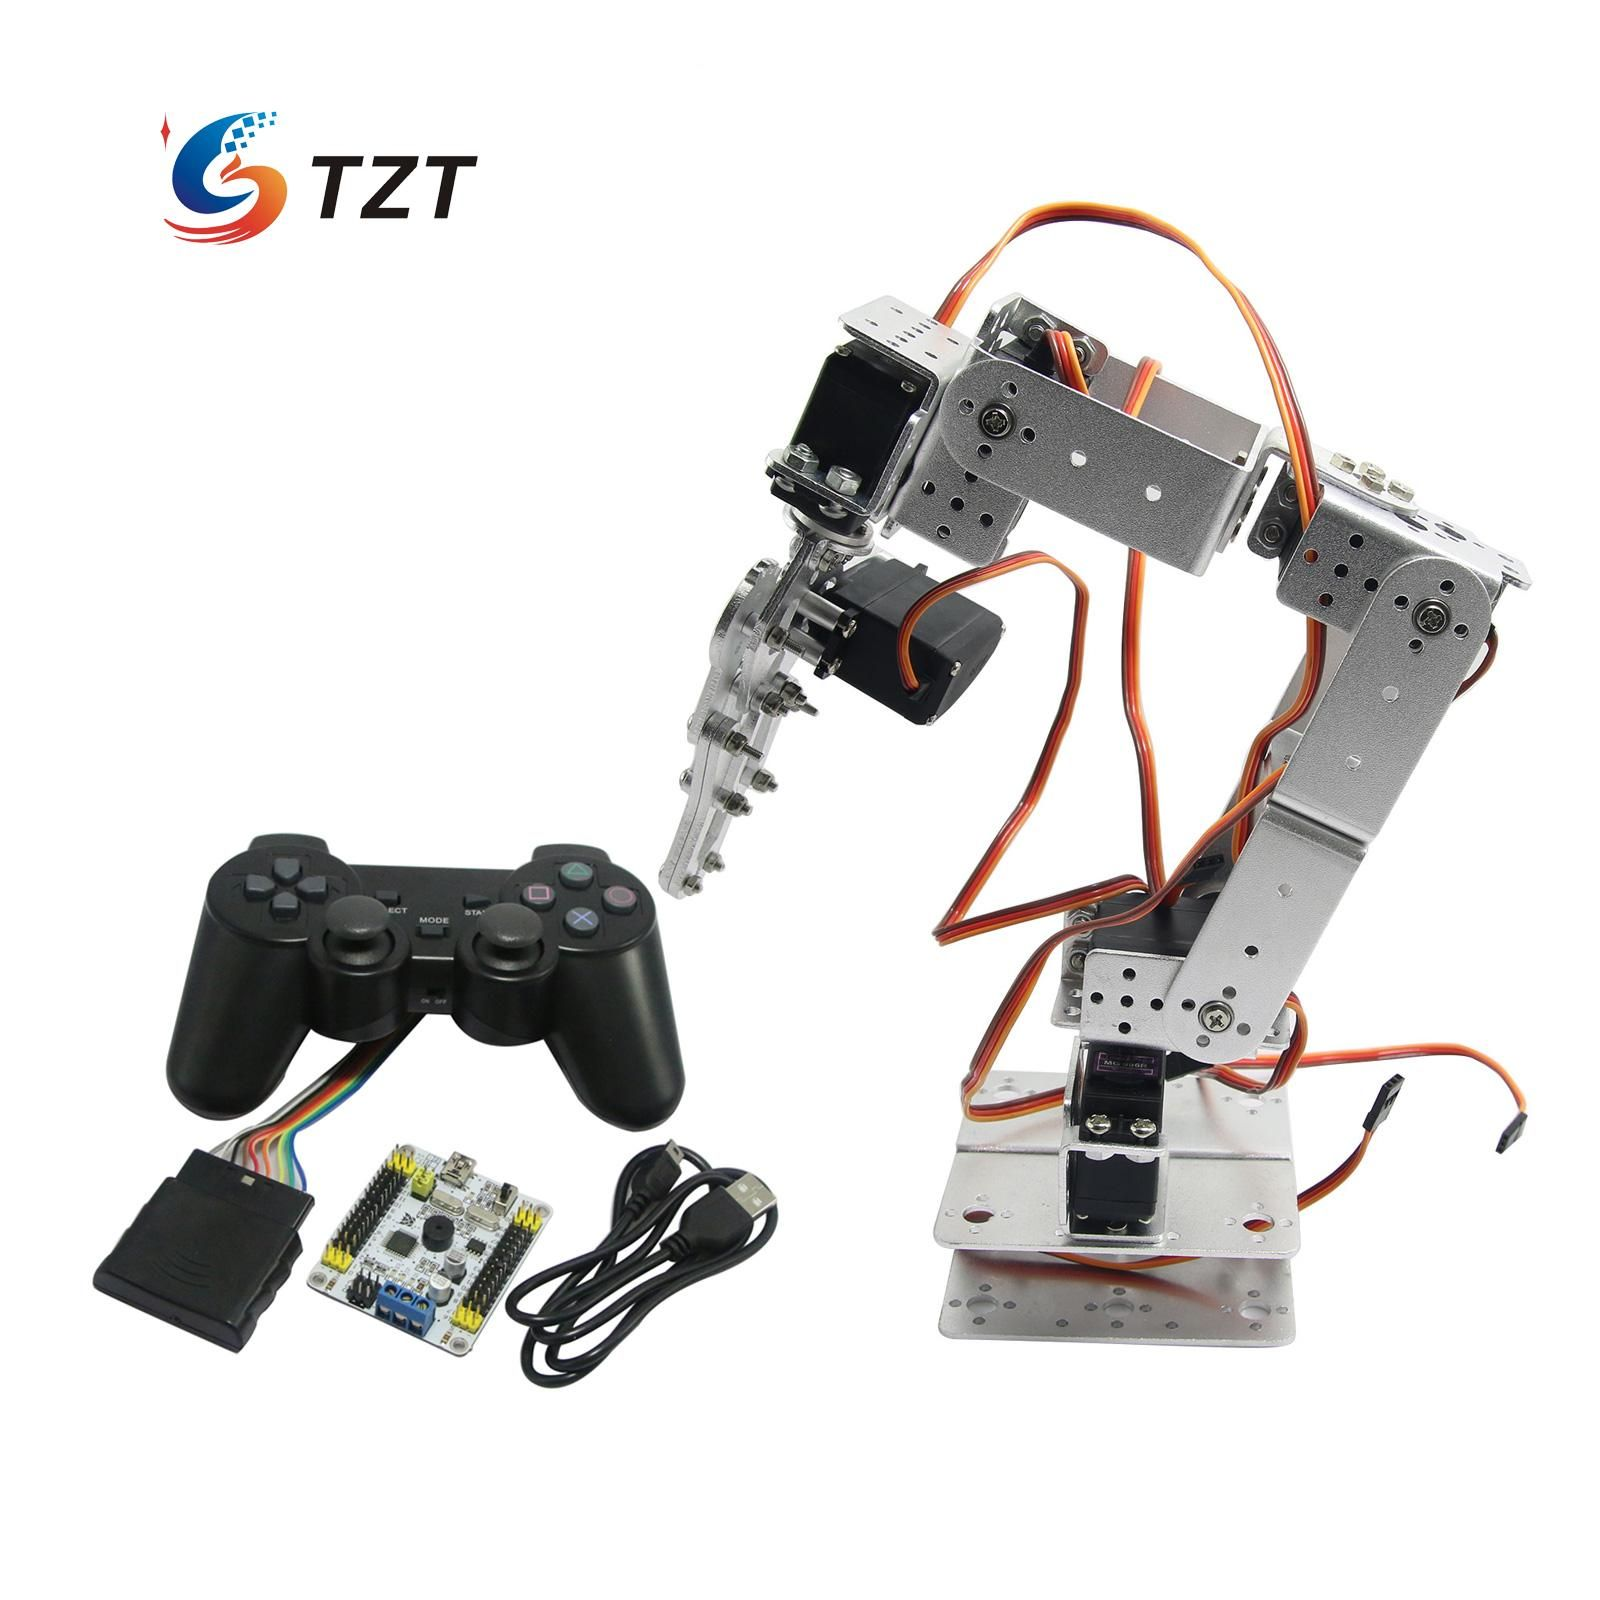 click to buy assembled robot 6 dof arm mechanical robotic clamp claw